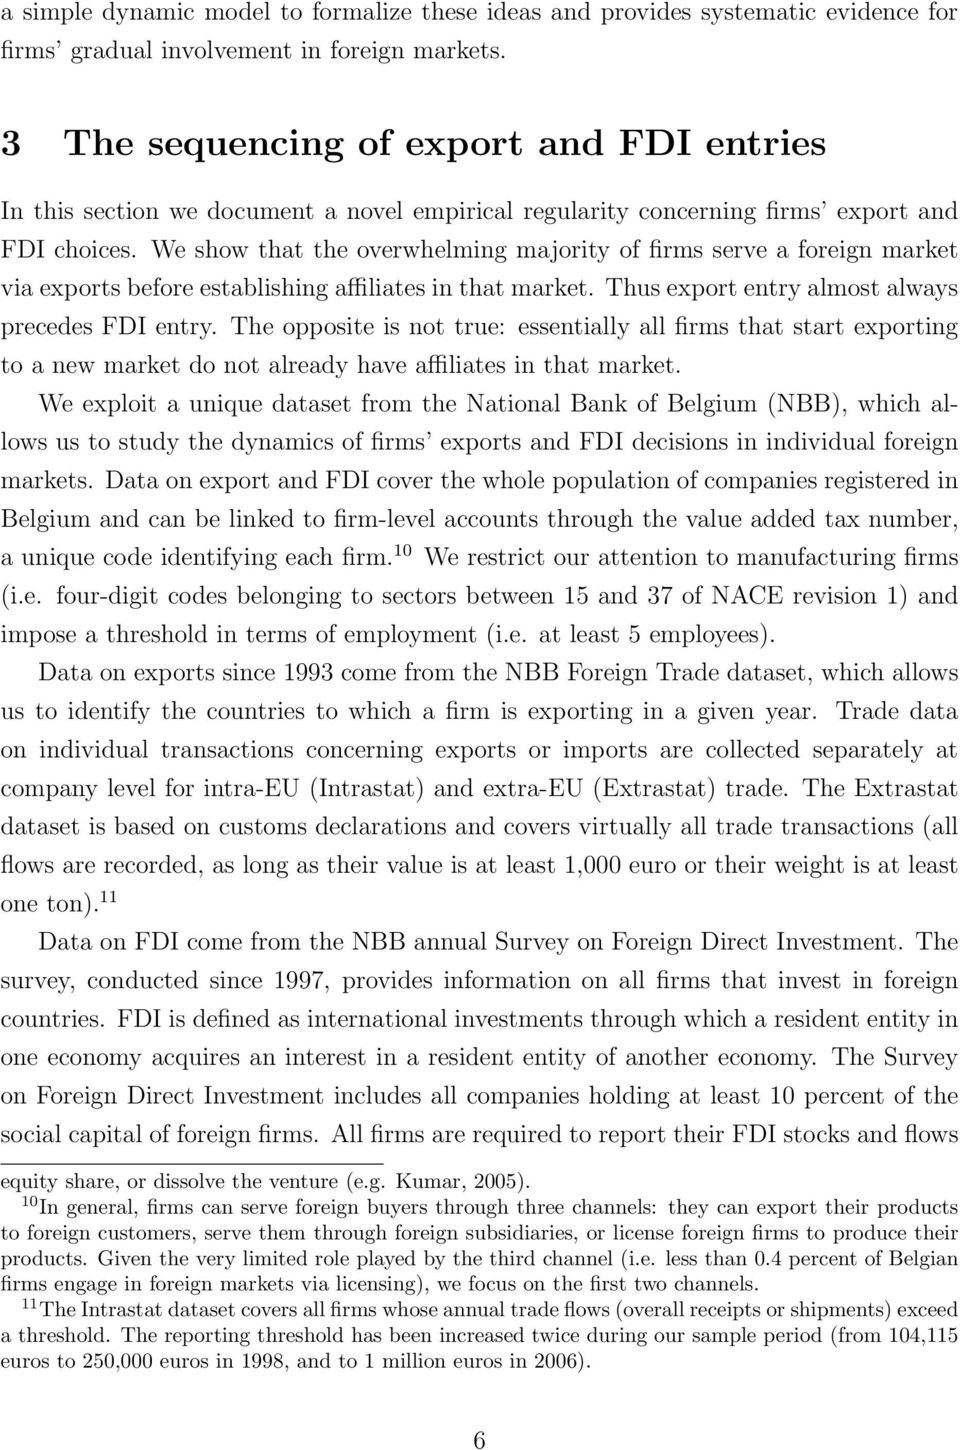 We show that the overwhelming majority of firms serve a foreign market via exports before establishing a liates in that market. Thus export entry almost always precedes FDI entry.